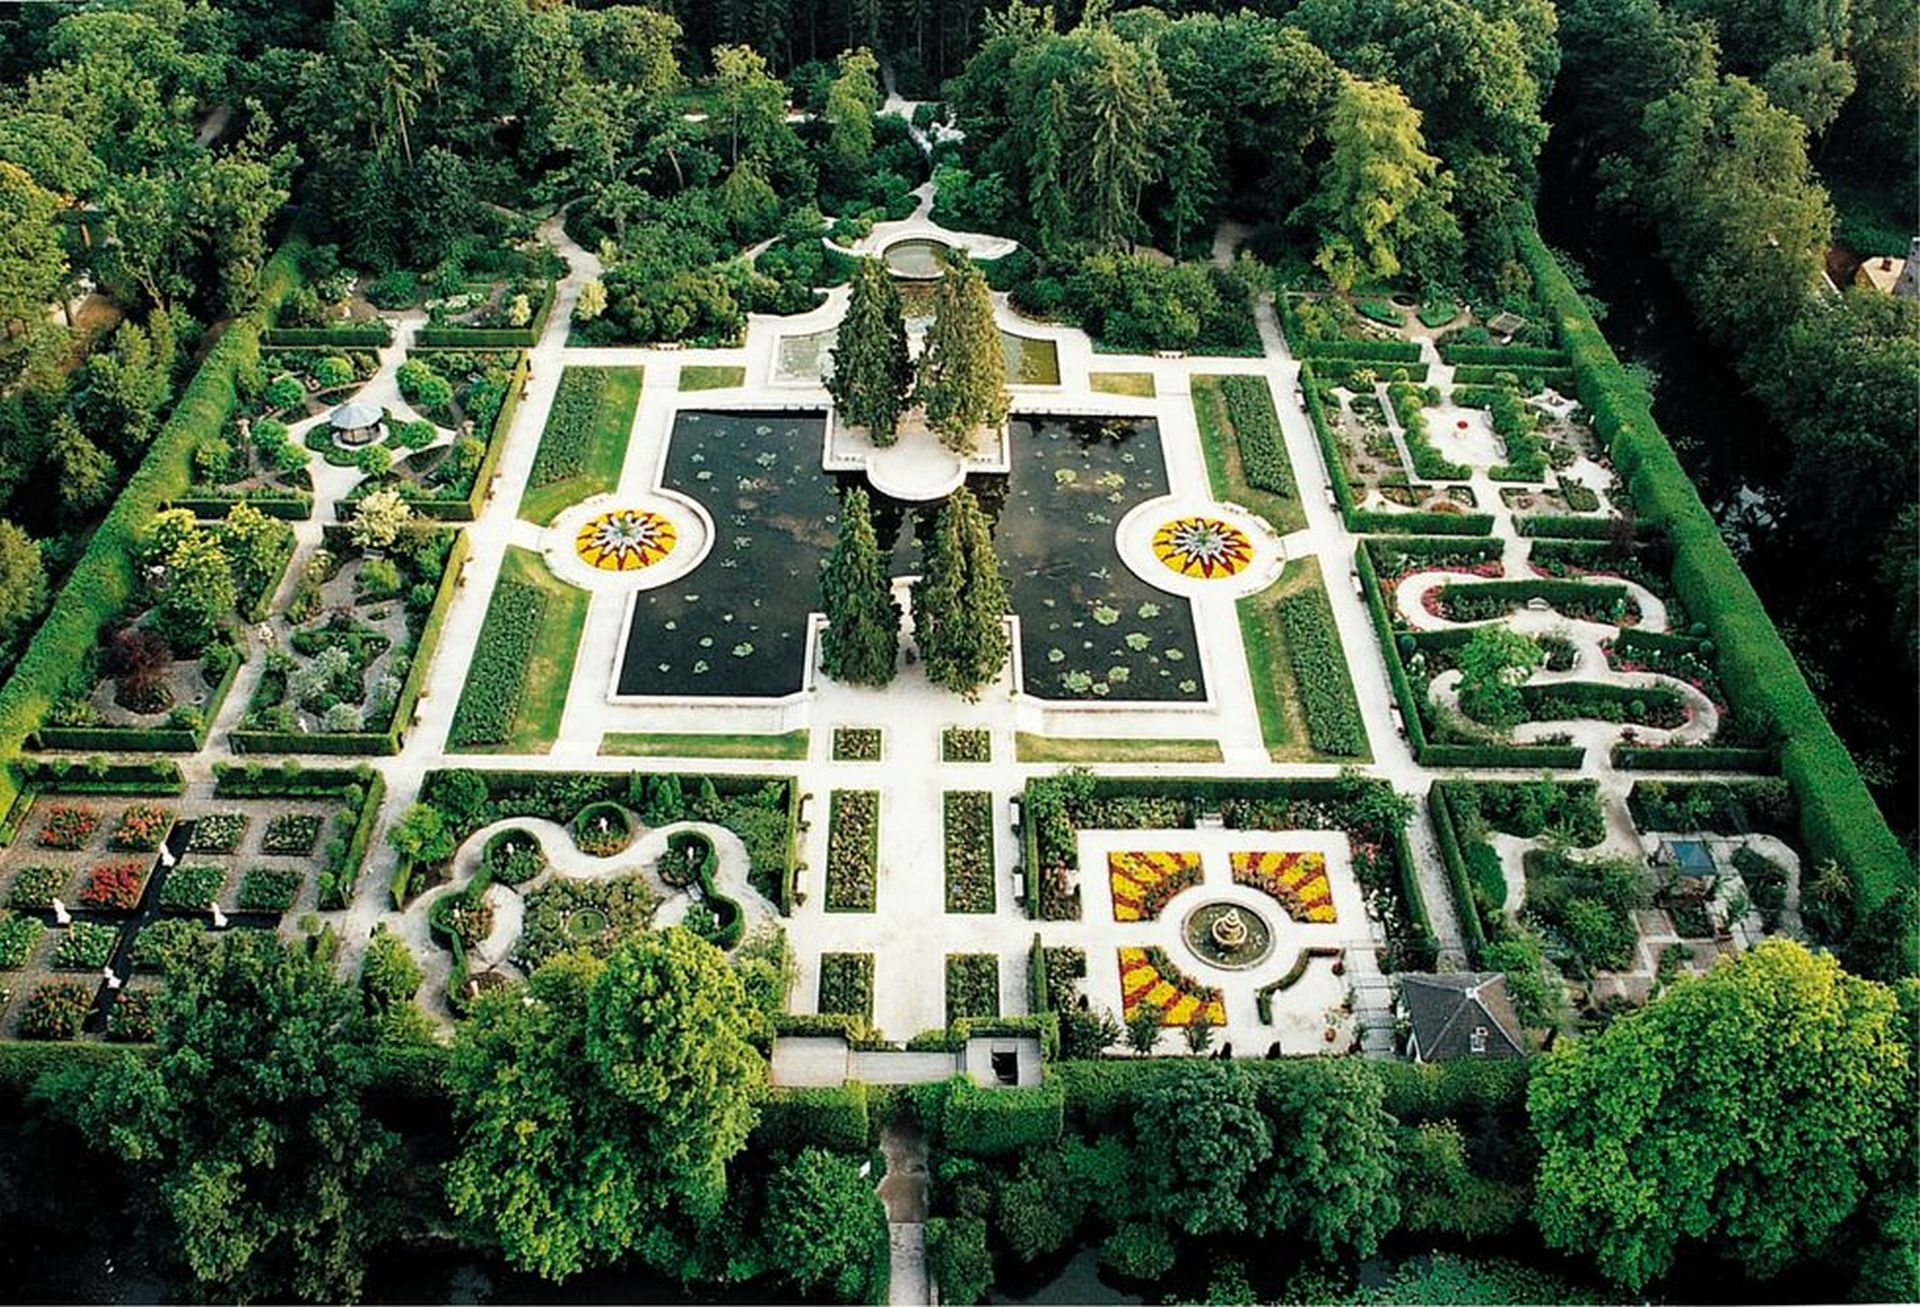 Very large garden with a sculpture in the middle separated by squares.